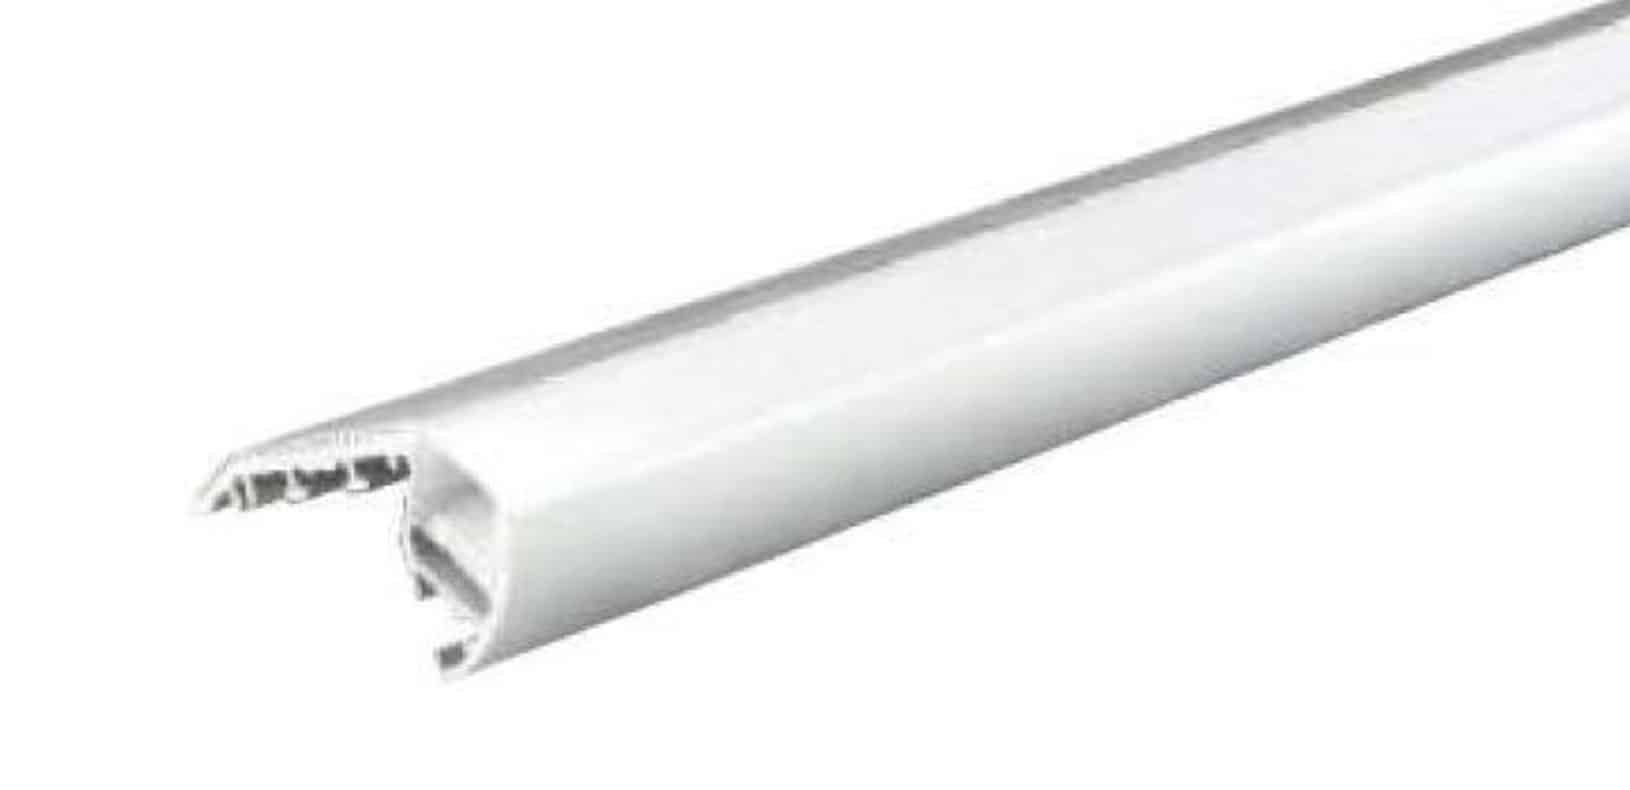 LED Aluminium Profile - Waterproof LED Profile - LW6628B